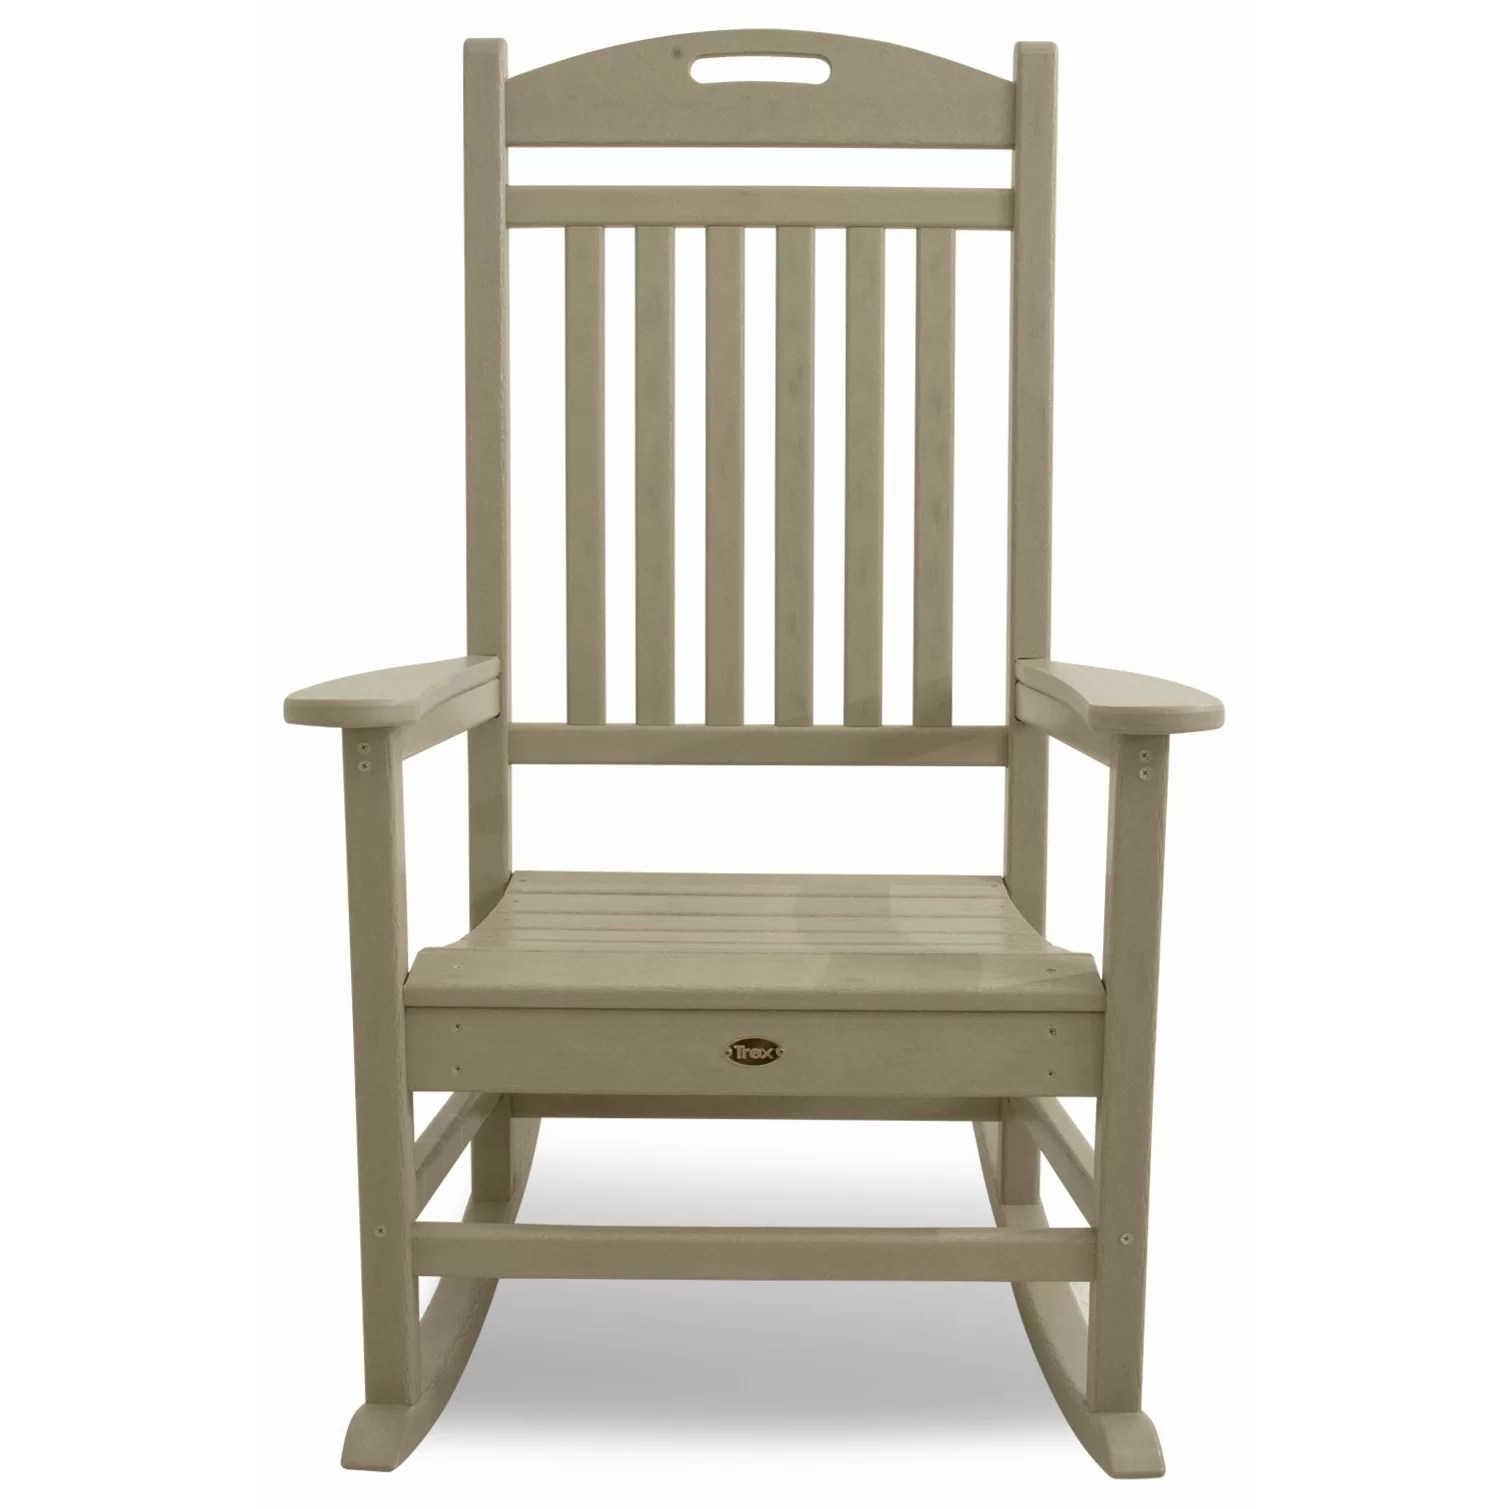 Polywood Rocking Chairs Polywood Yacht Club Rocking Chair And Reviews Wayfair